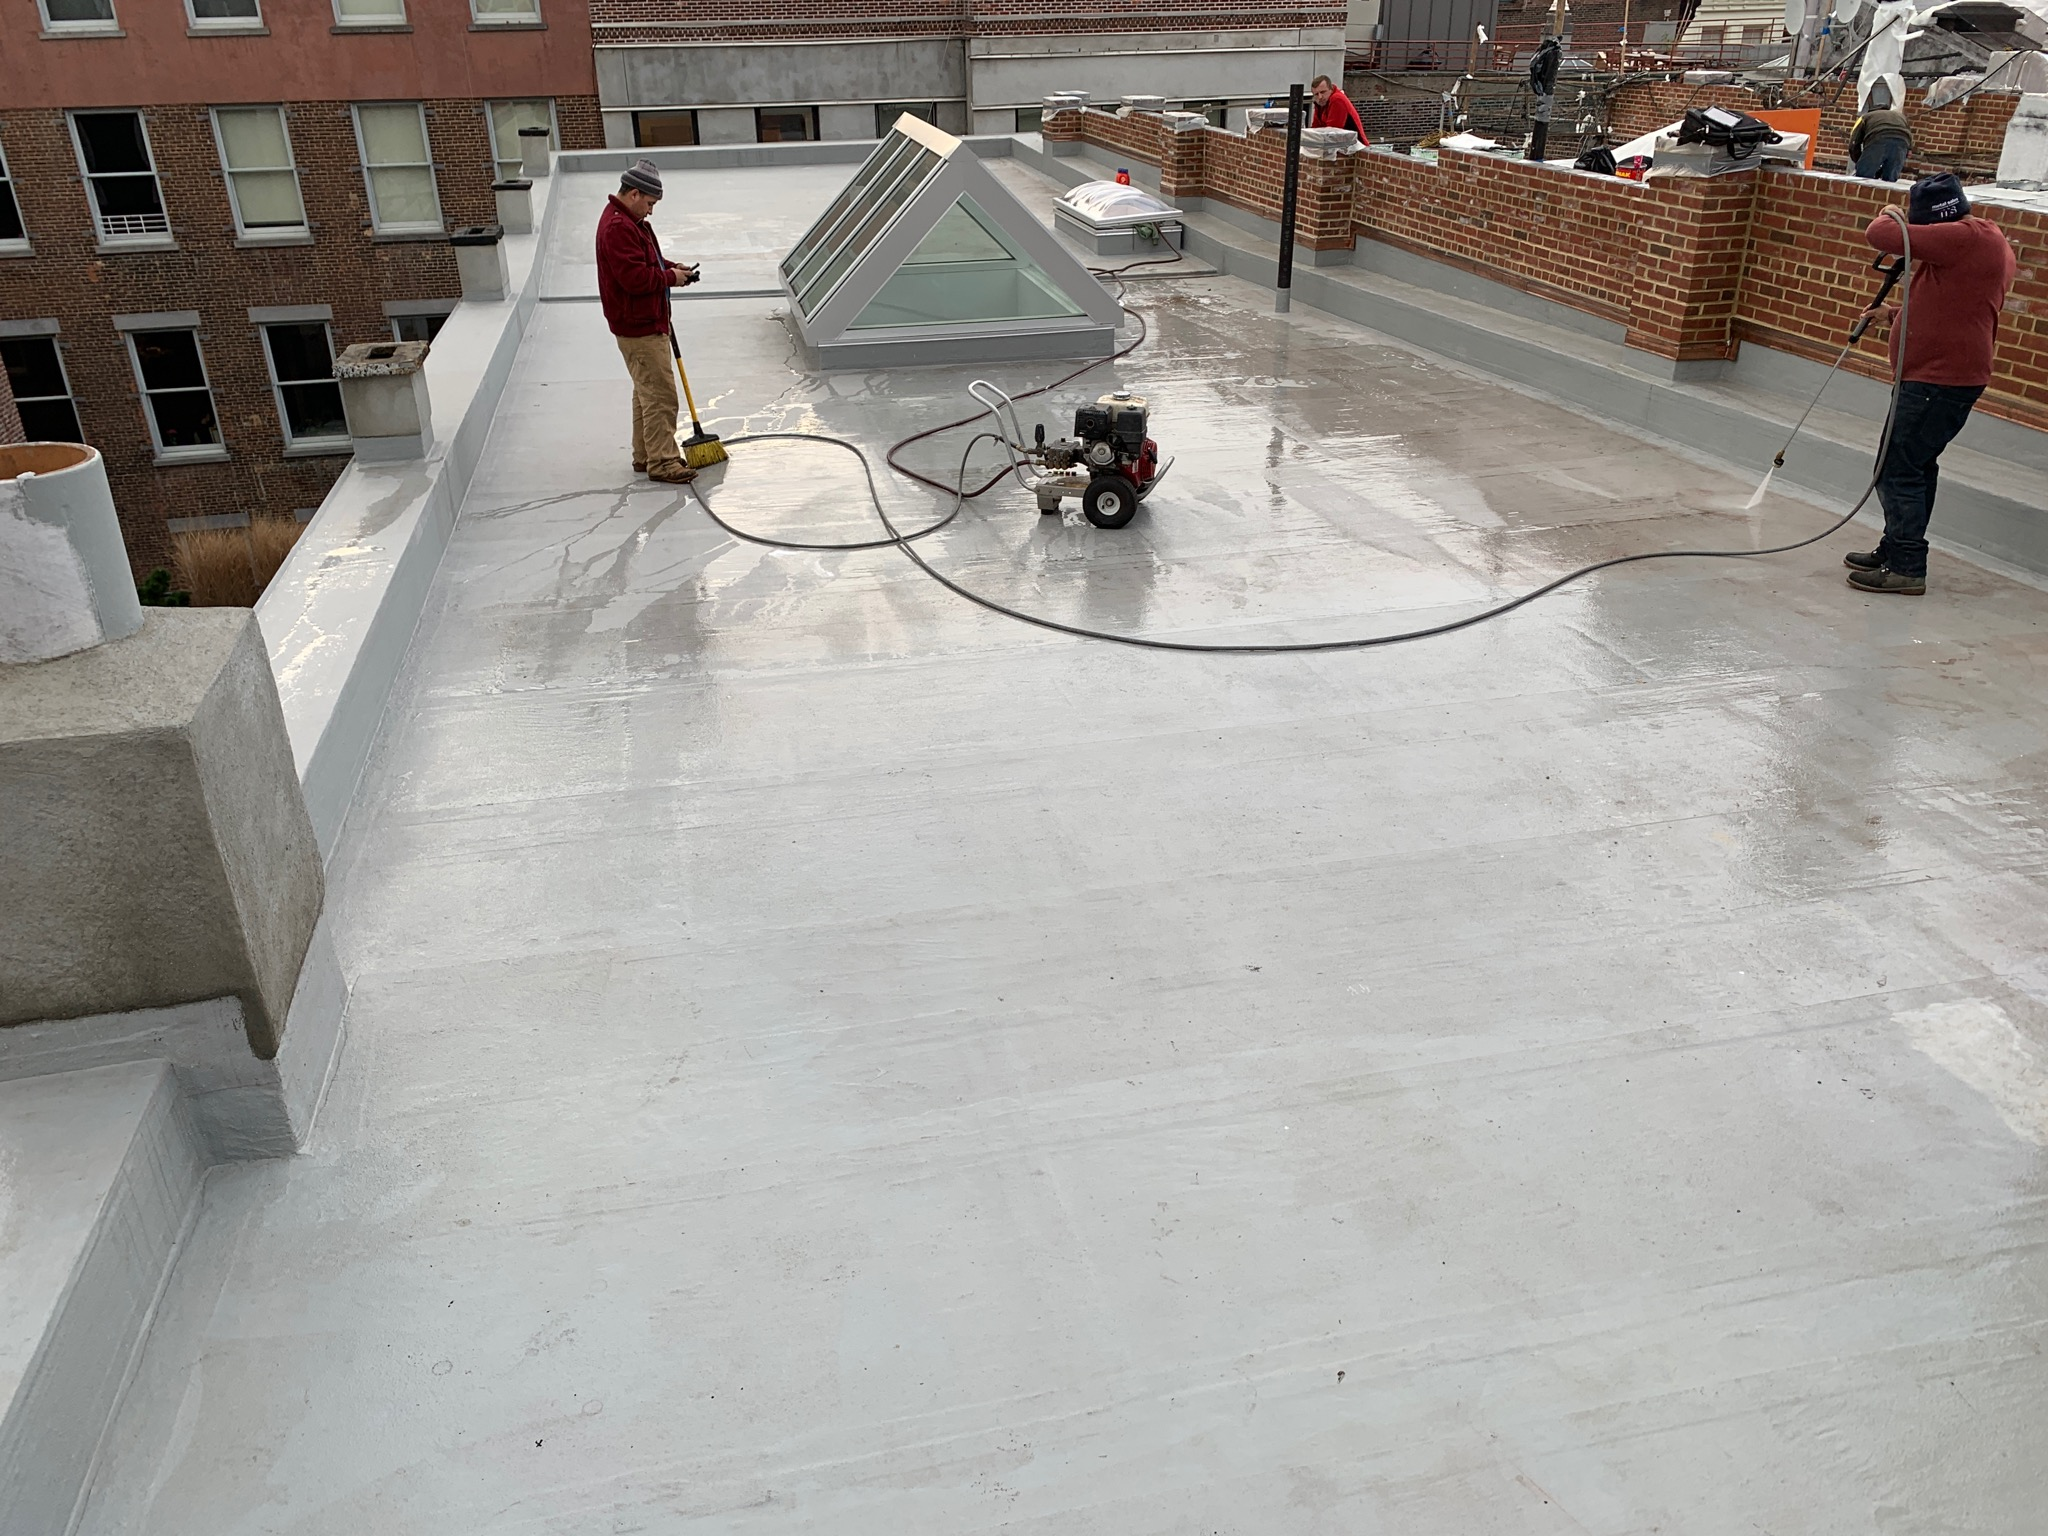 https://nyccommercialroofing.com/wp-content/uploads/2020/06/kemper120.jpg